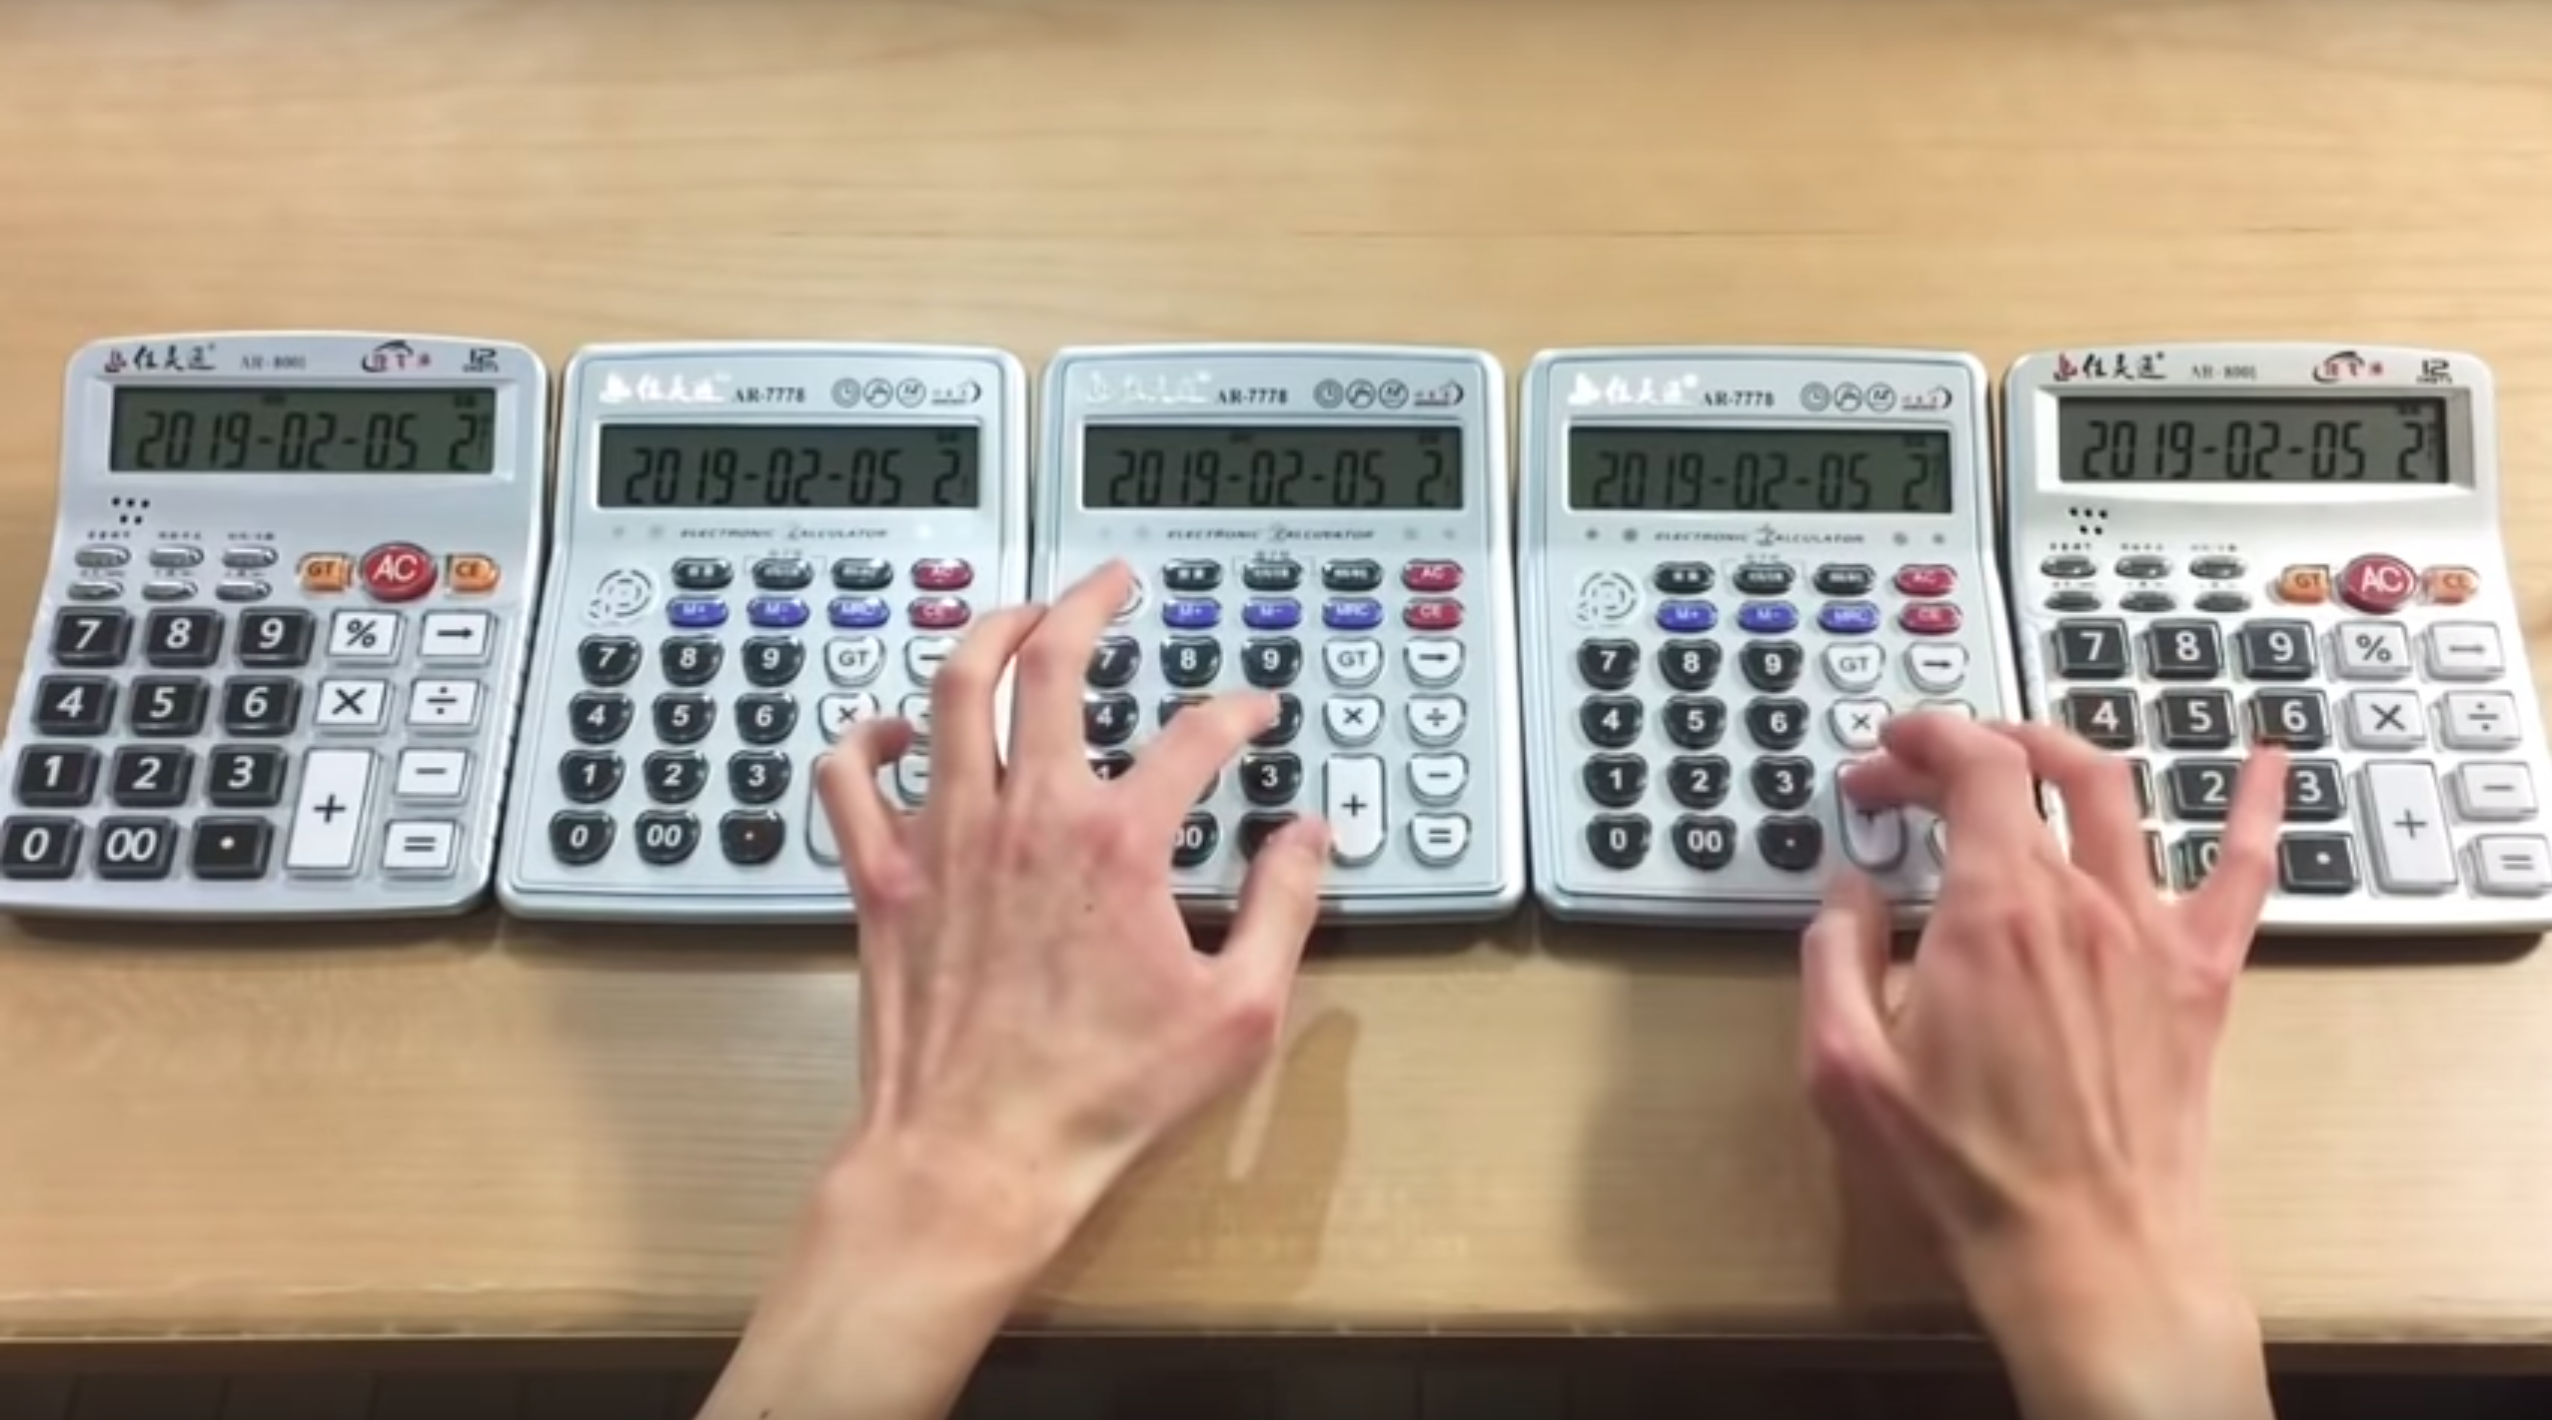 Electronics, Calculator, Product design, Product, Design, Electronic Musical Instruments, electronics, Calculator, Office equipment, Electronic instrument, Technology, Electronic device, Office supplies, Electronic musical instrument